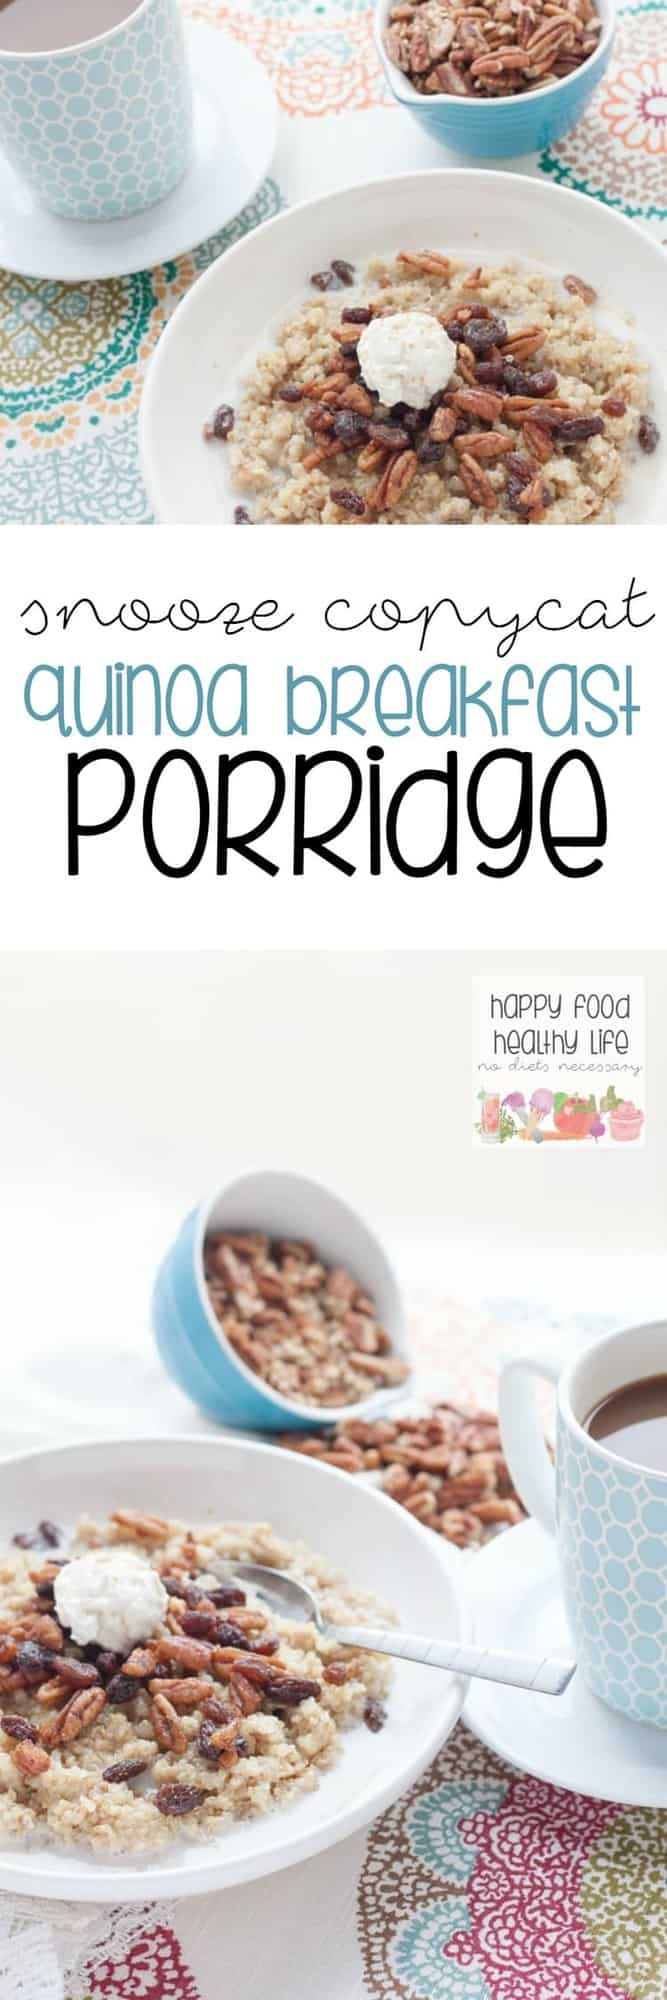 Snooze Copycat Quinoa Breakfast Porridge - a sweet and hearty bowl of comfort food. A perfect healthy protein-packed breakfast for cold mornings this winter!